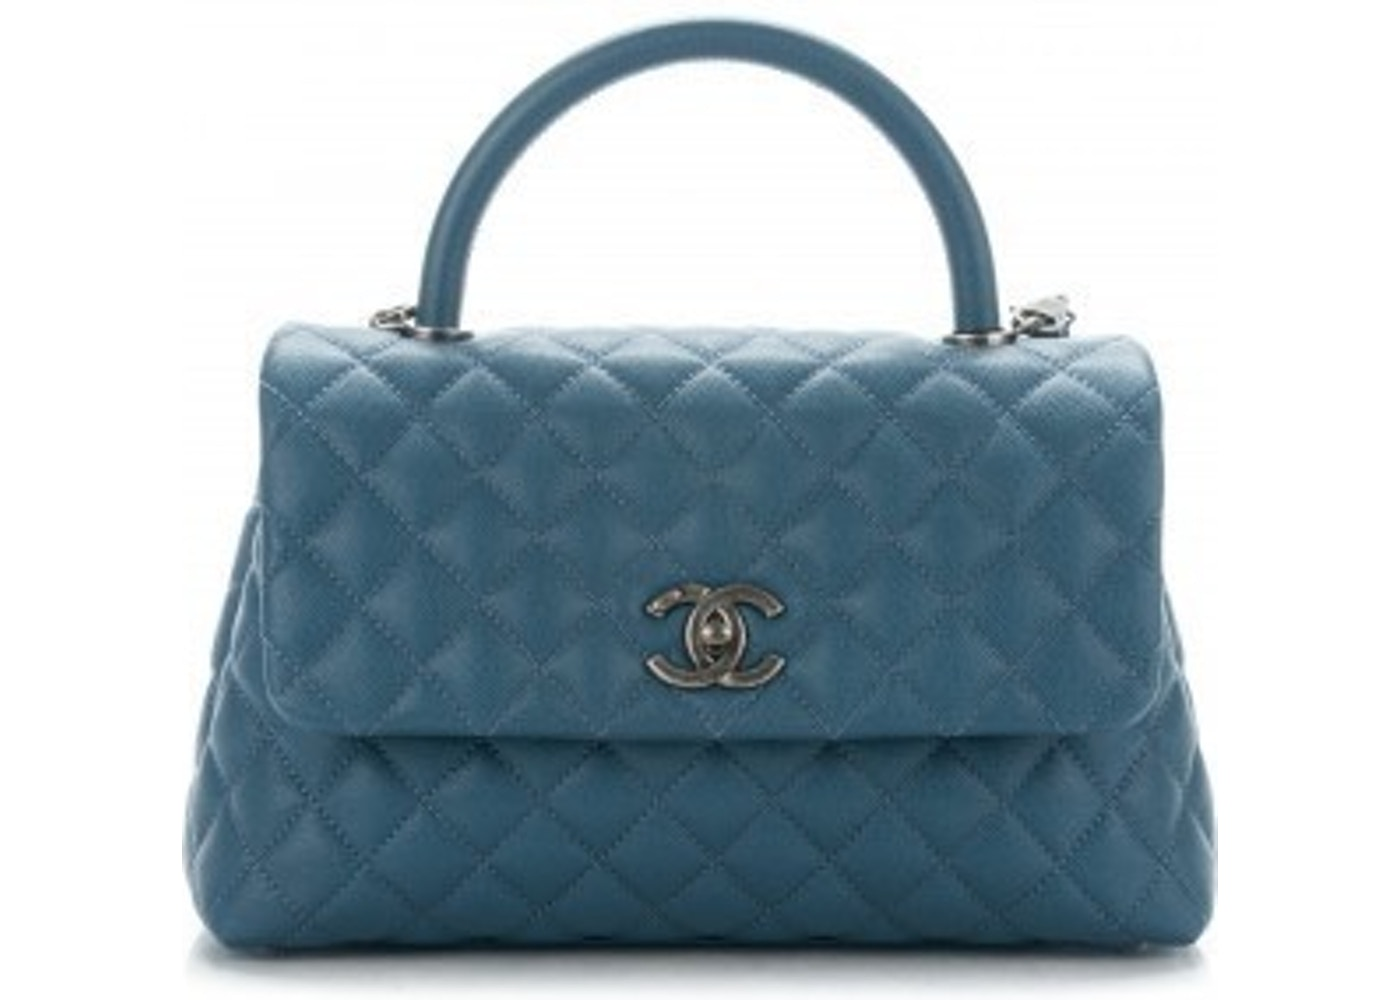 703e0dcc1586 Chanel Coco Handle Bag Quilted Small Blue. Quilted Small Blue